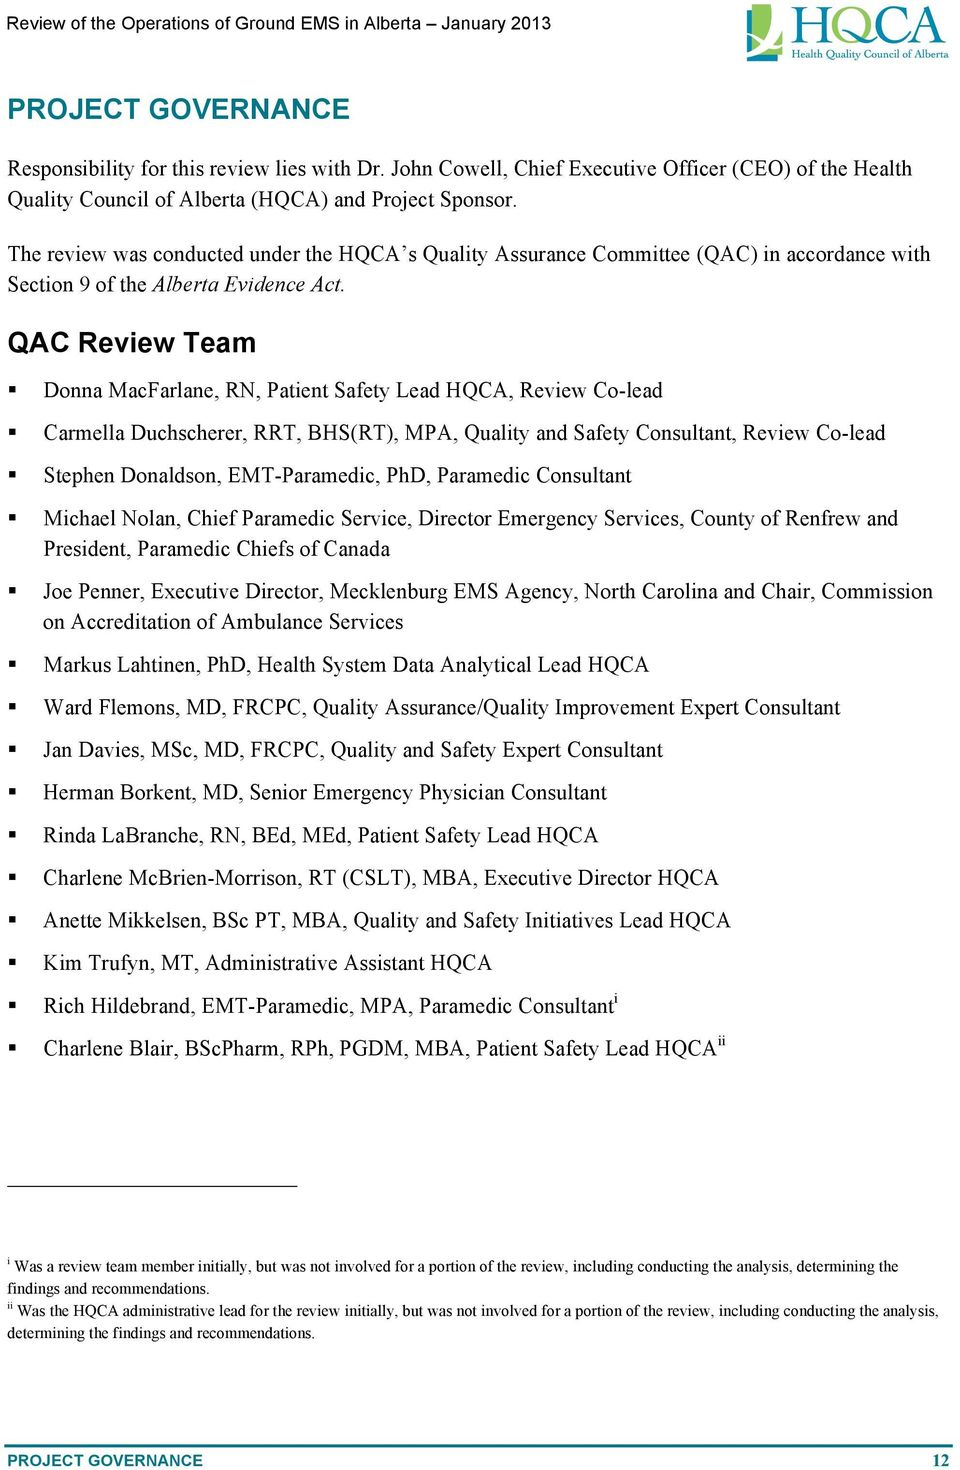 QAC Review Team Donna MacFarlane, RN, Patient Safety Lead HQCA, Review Co-lead Carmella Duchscherer, RRT, BHS(RT), MPA, Quality and Safety Consultant, Review Co-lead Stephen Donaldson, EMT-Paramedic,